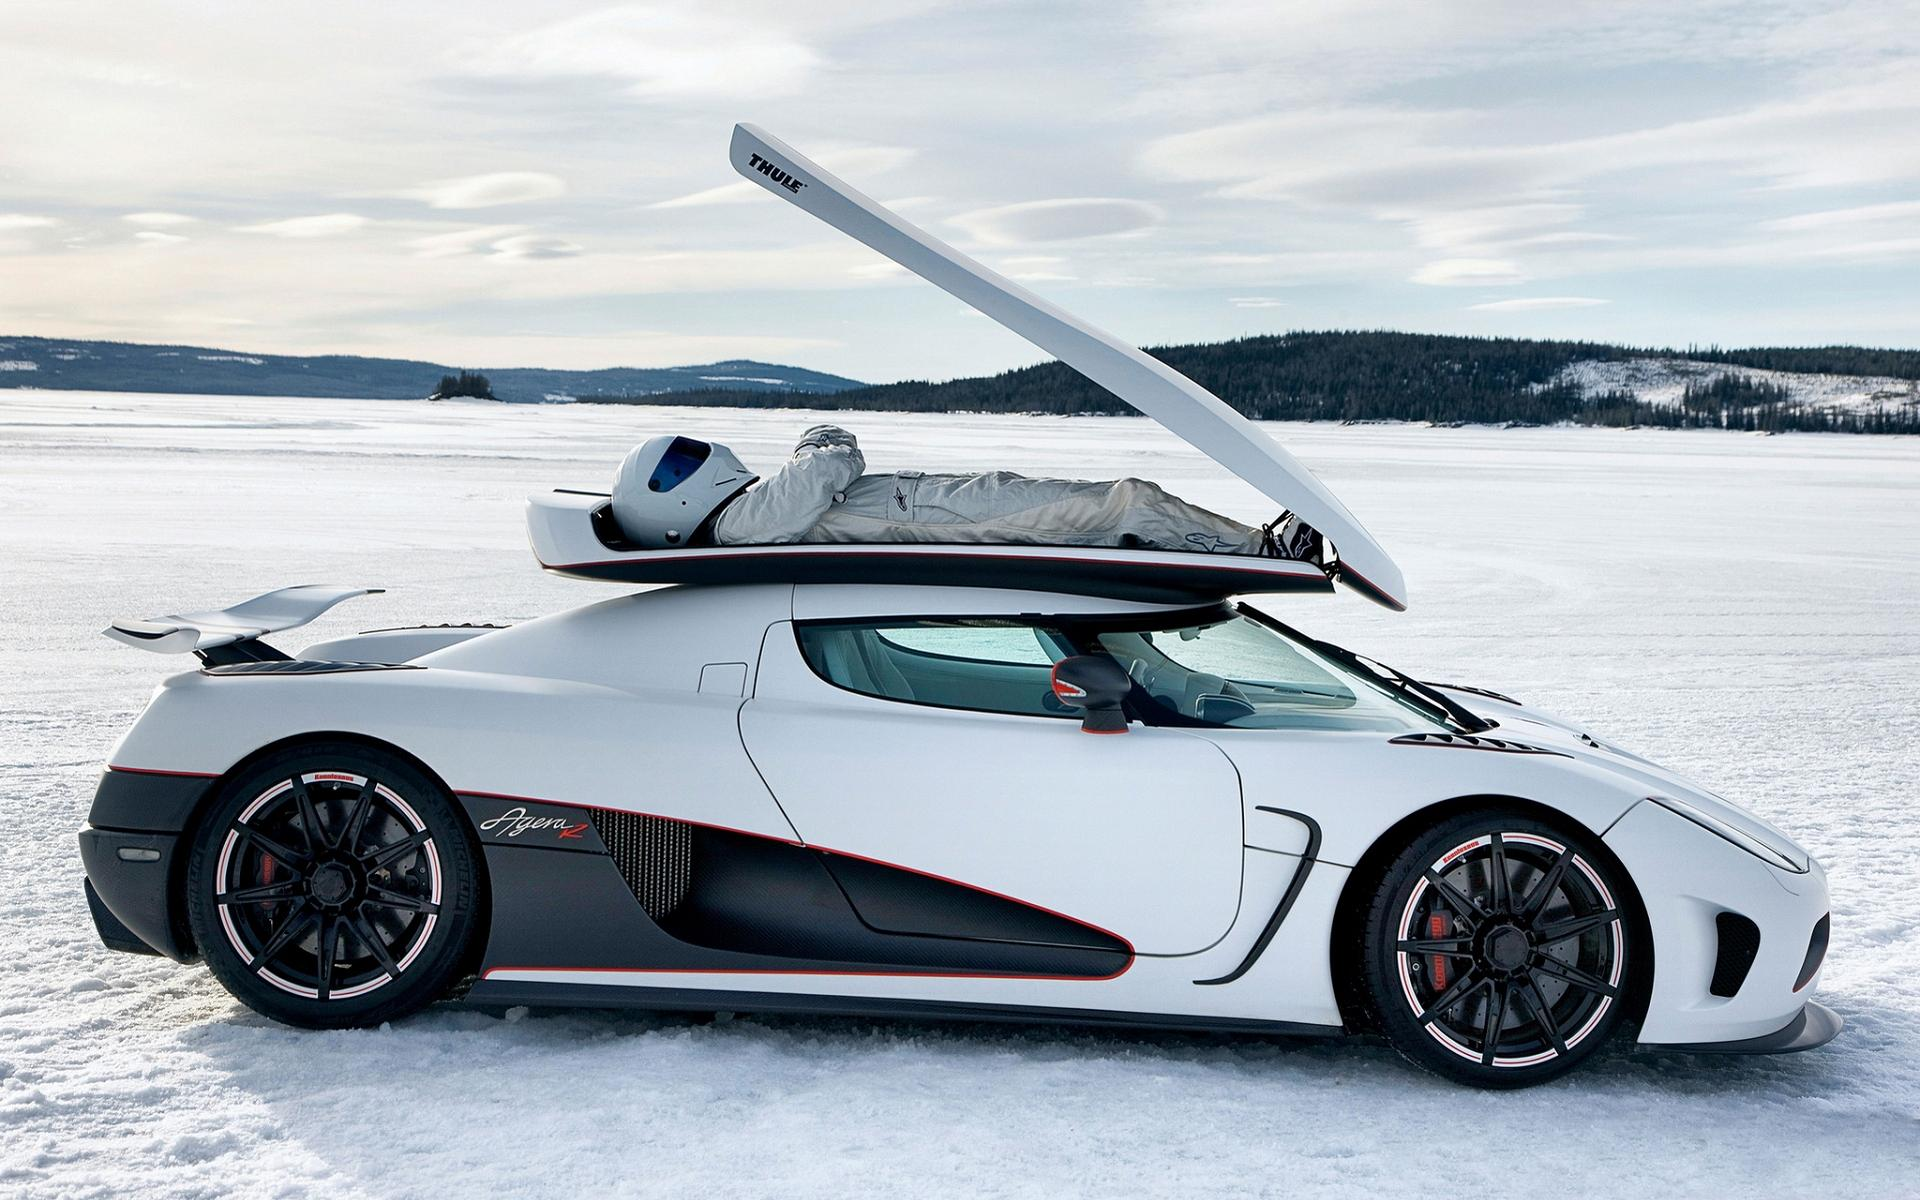 top_gear_koenigsegg_agera_r_the_stig_some_say_99213_3840x2400